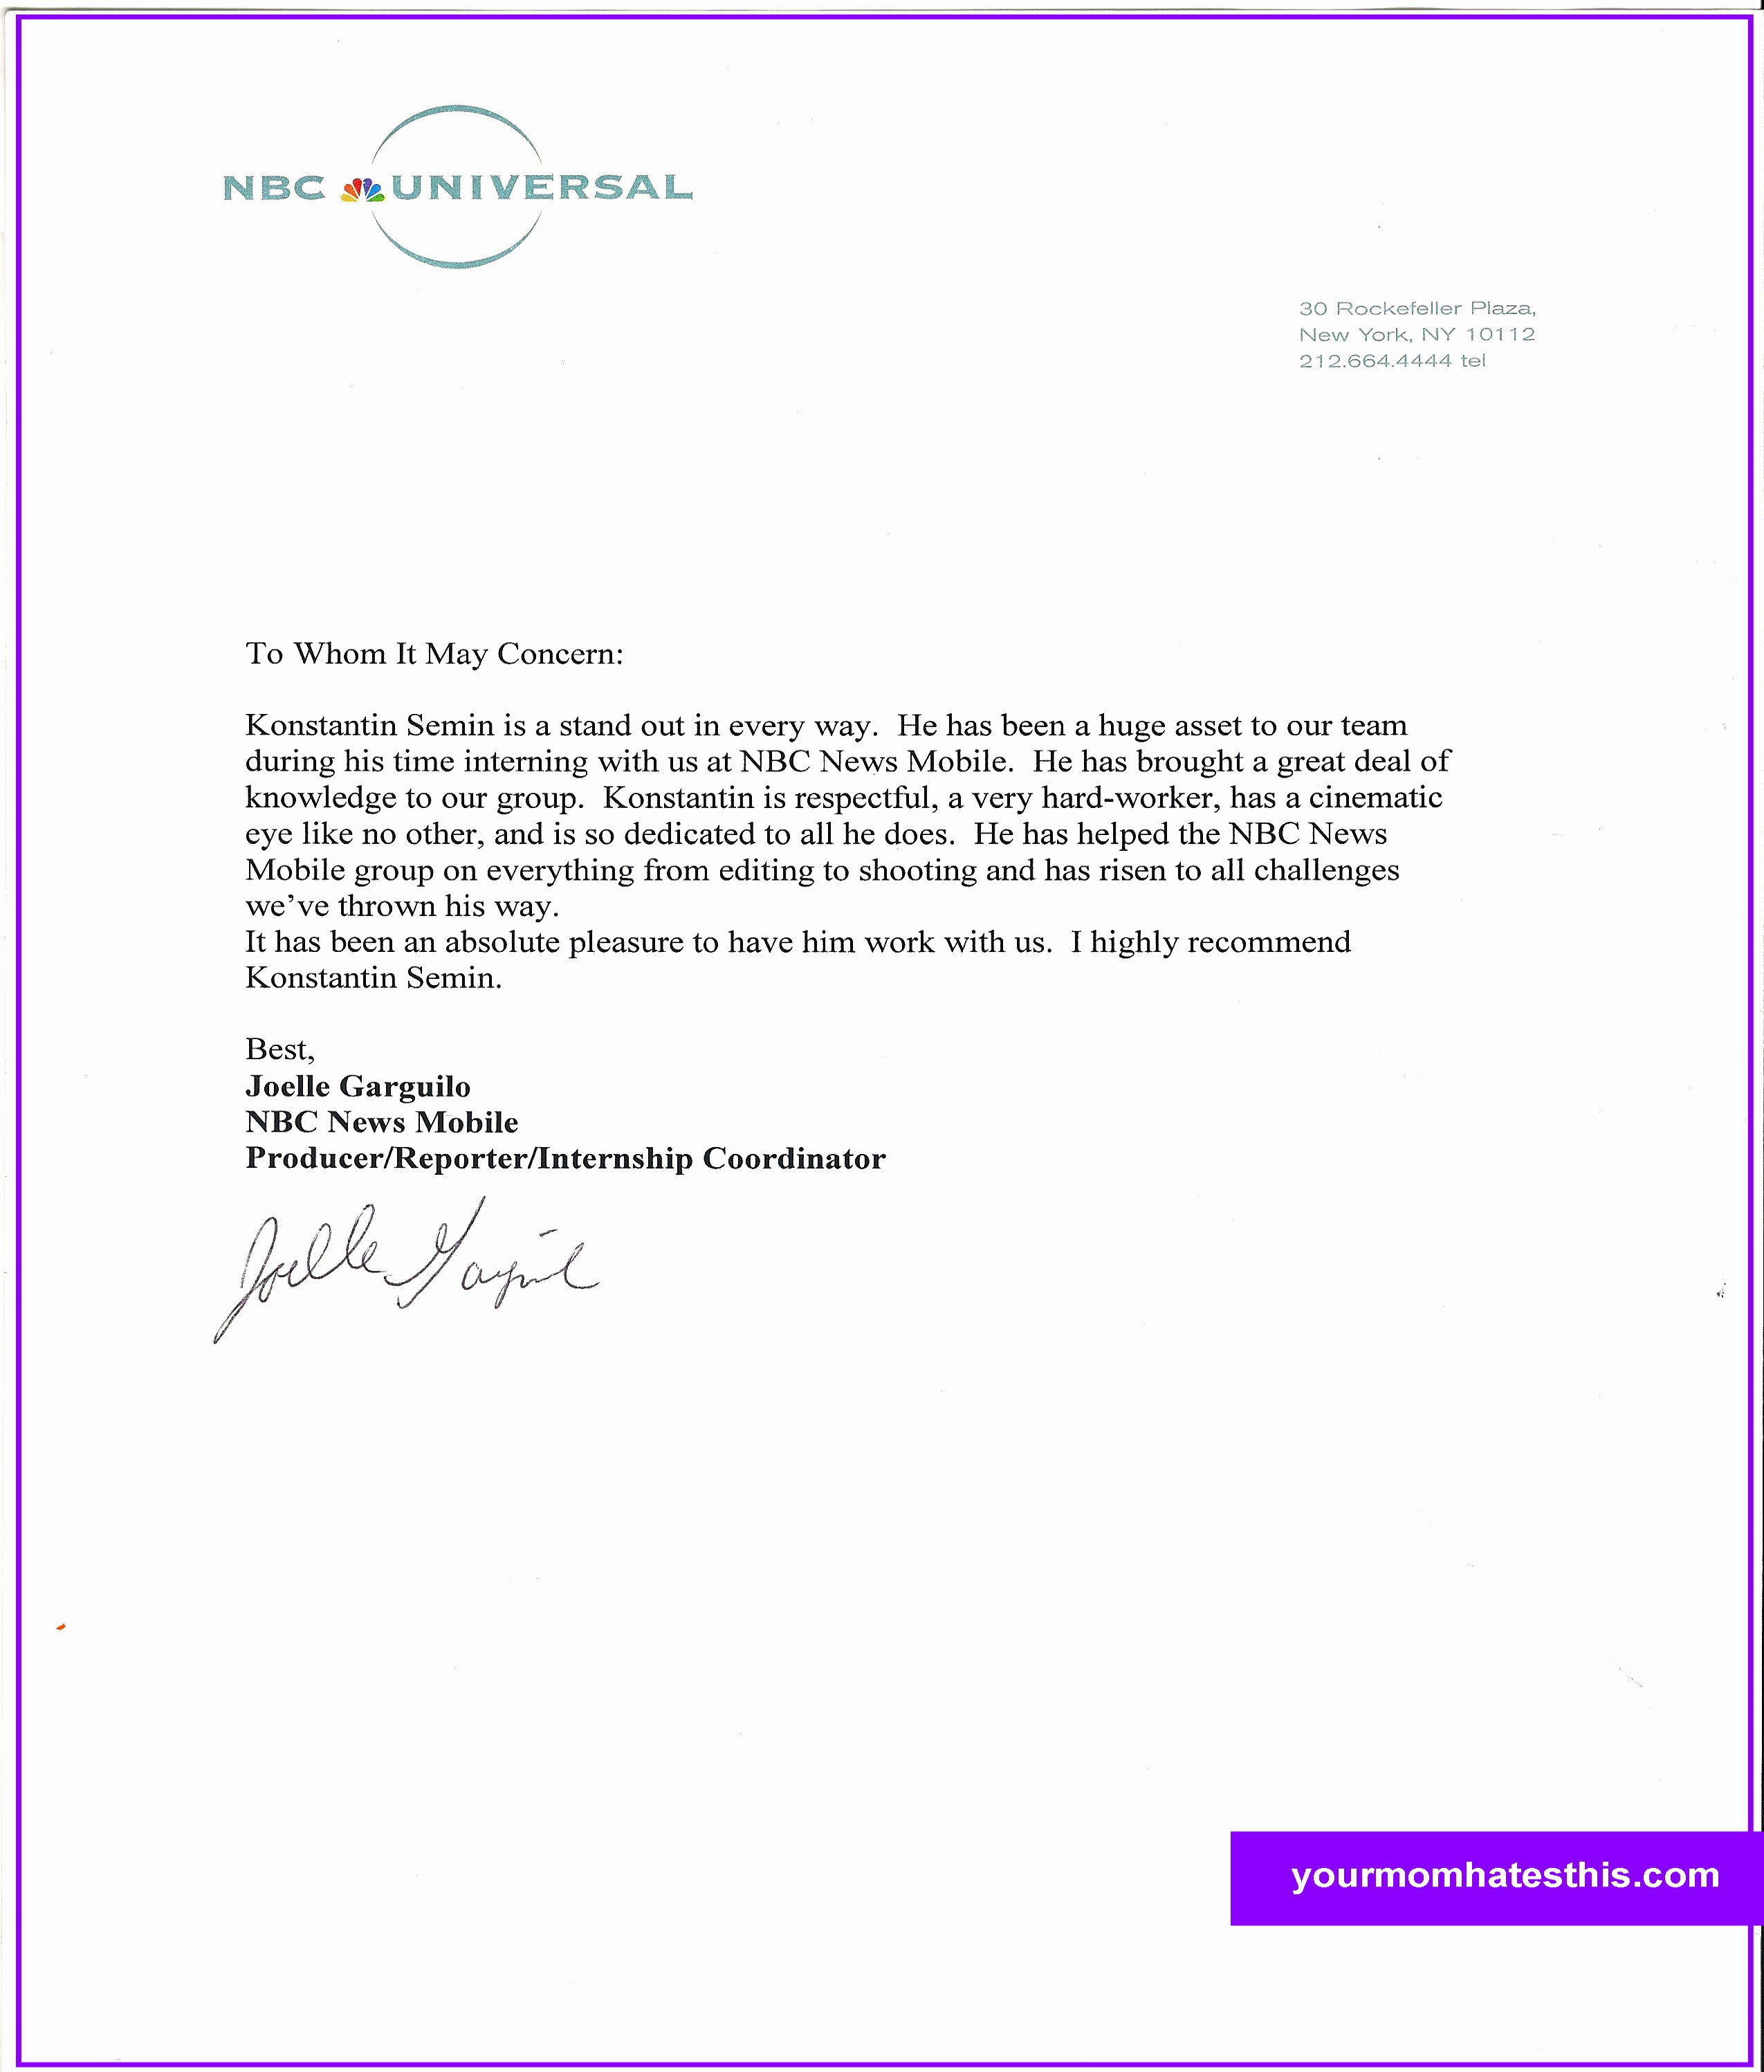 Letters Of Recommendation format Samples Beautiful Download Letter Of Re Mendation Samples